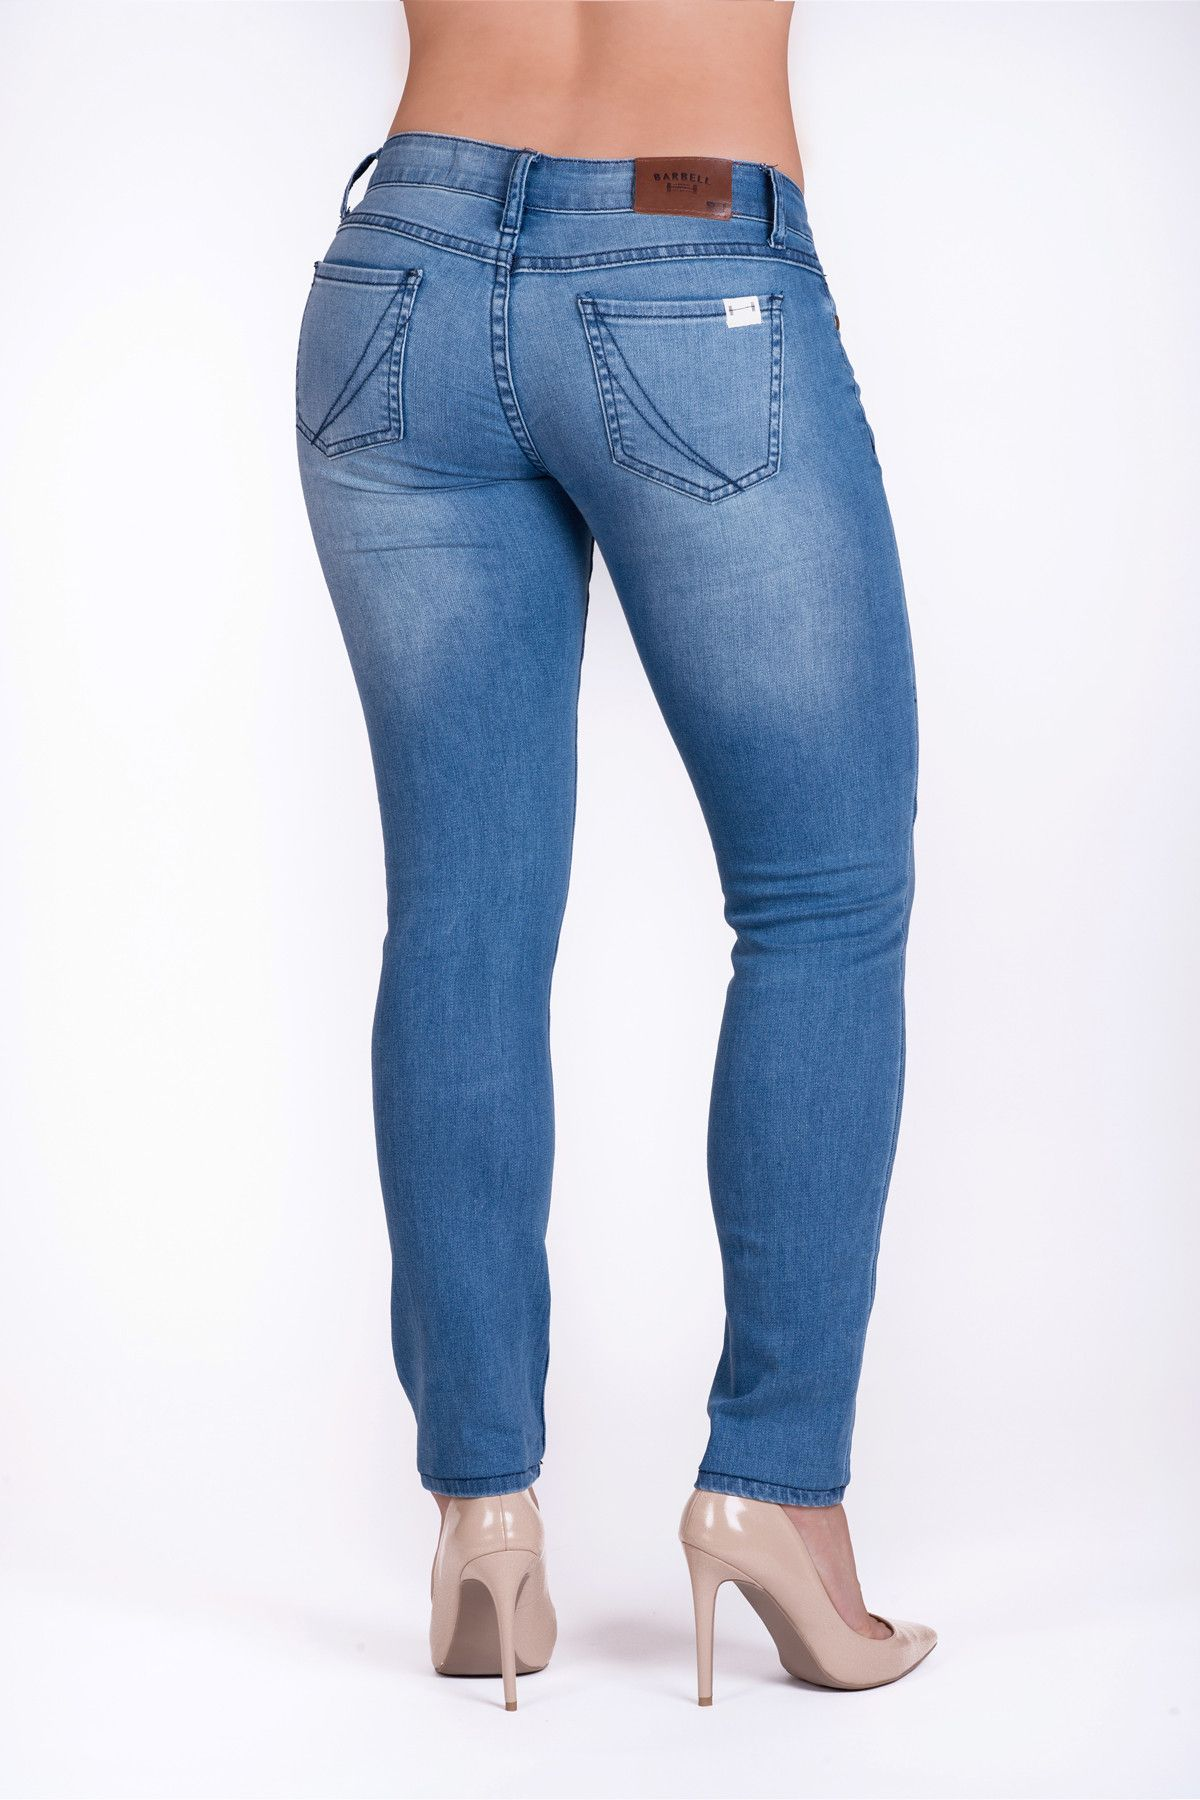 Slim athletic fit in light wash fitness gear jeans